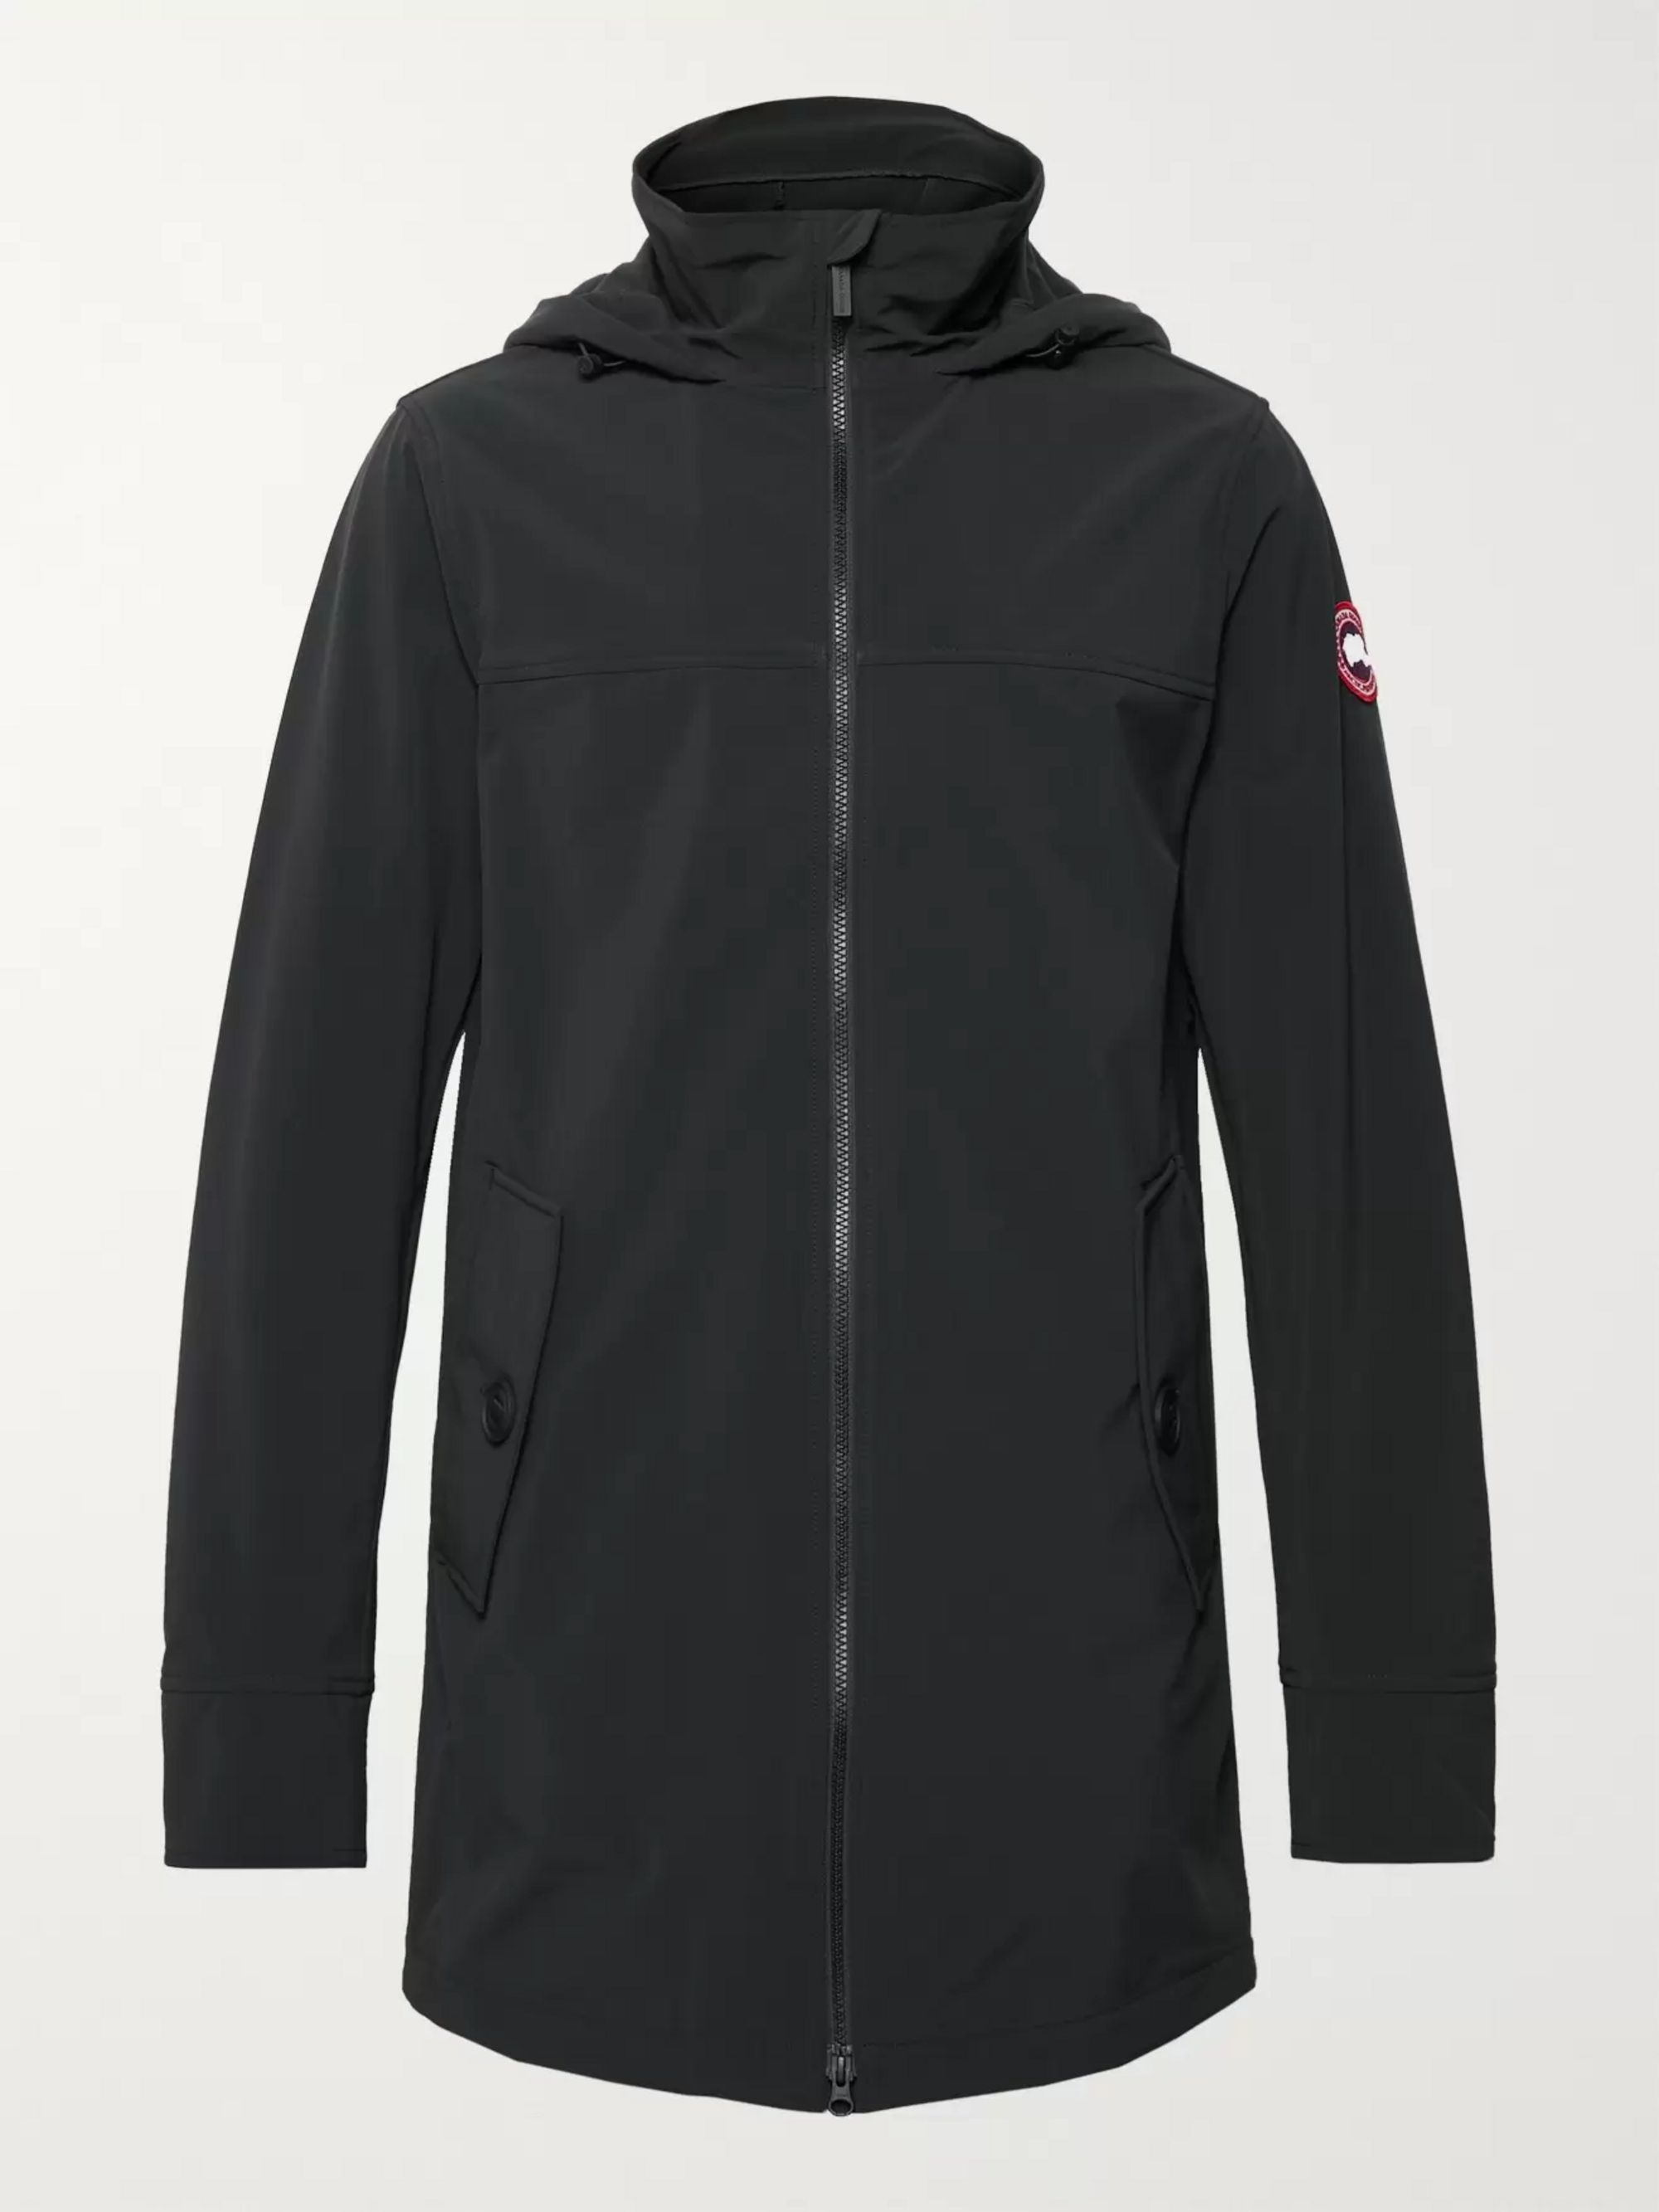 Kent Slim Fit Tri Durance SS Hooded Jacket